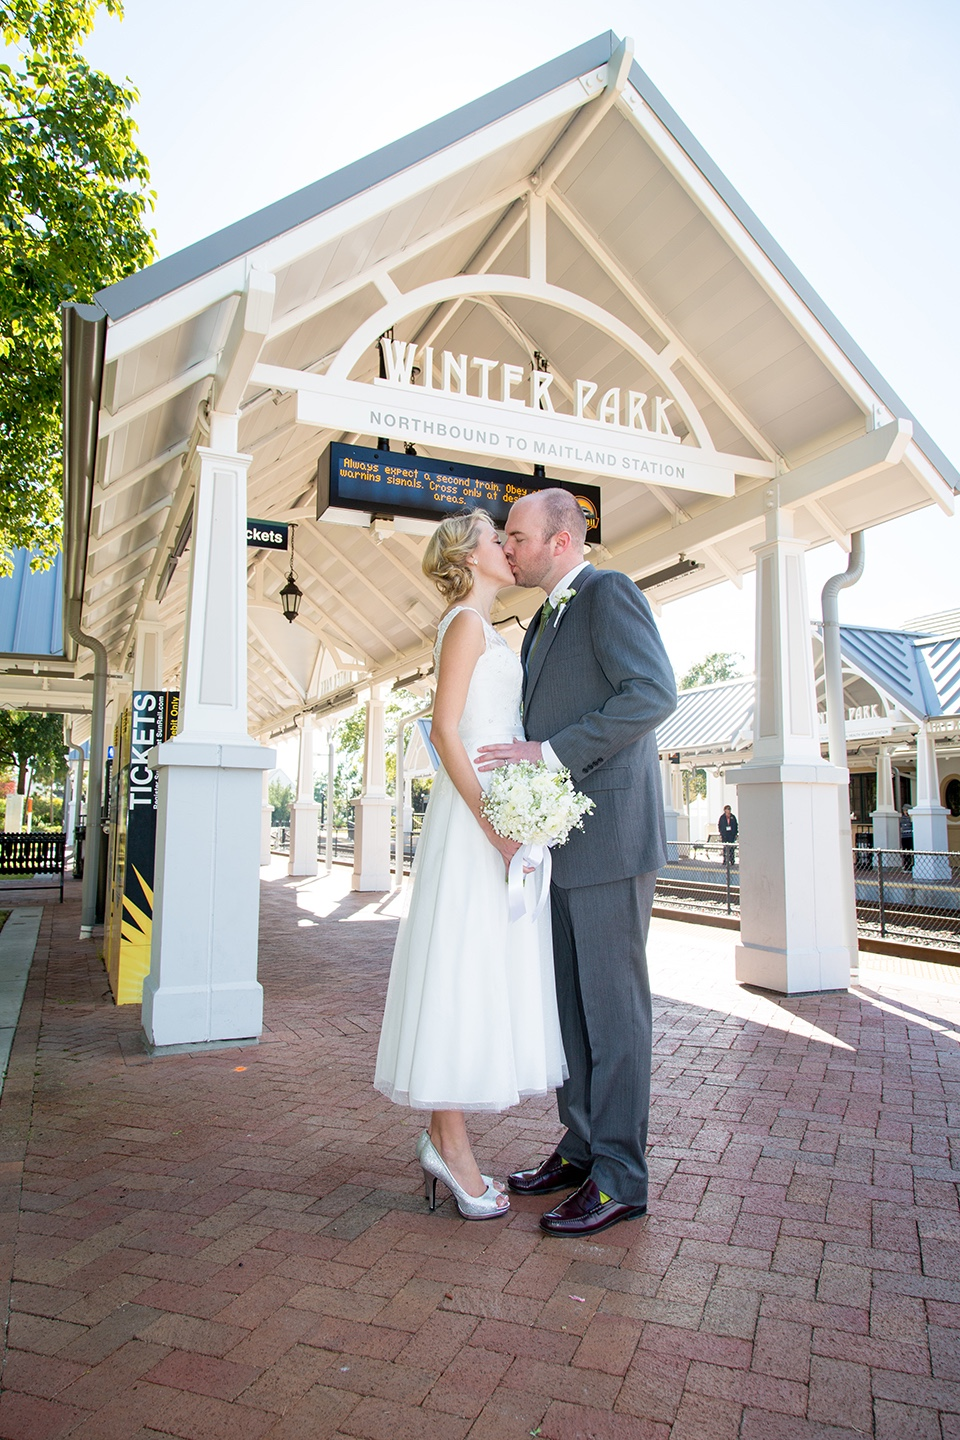 married in winter park, winter park florida, train station, newlyweds